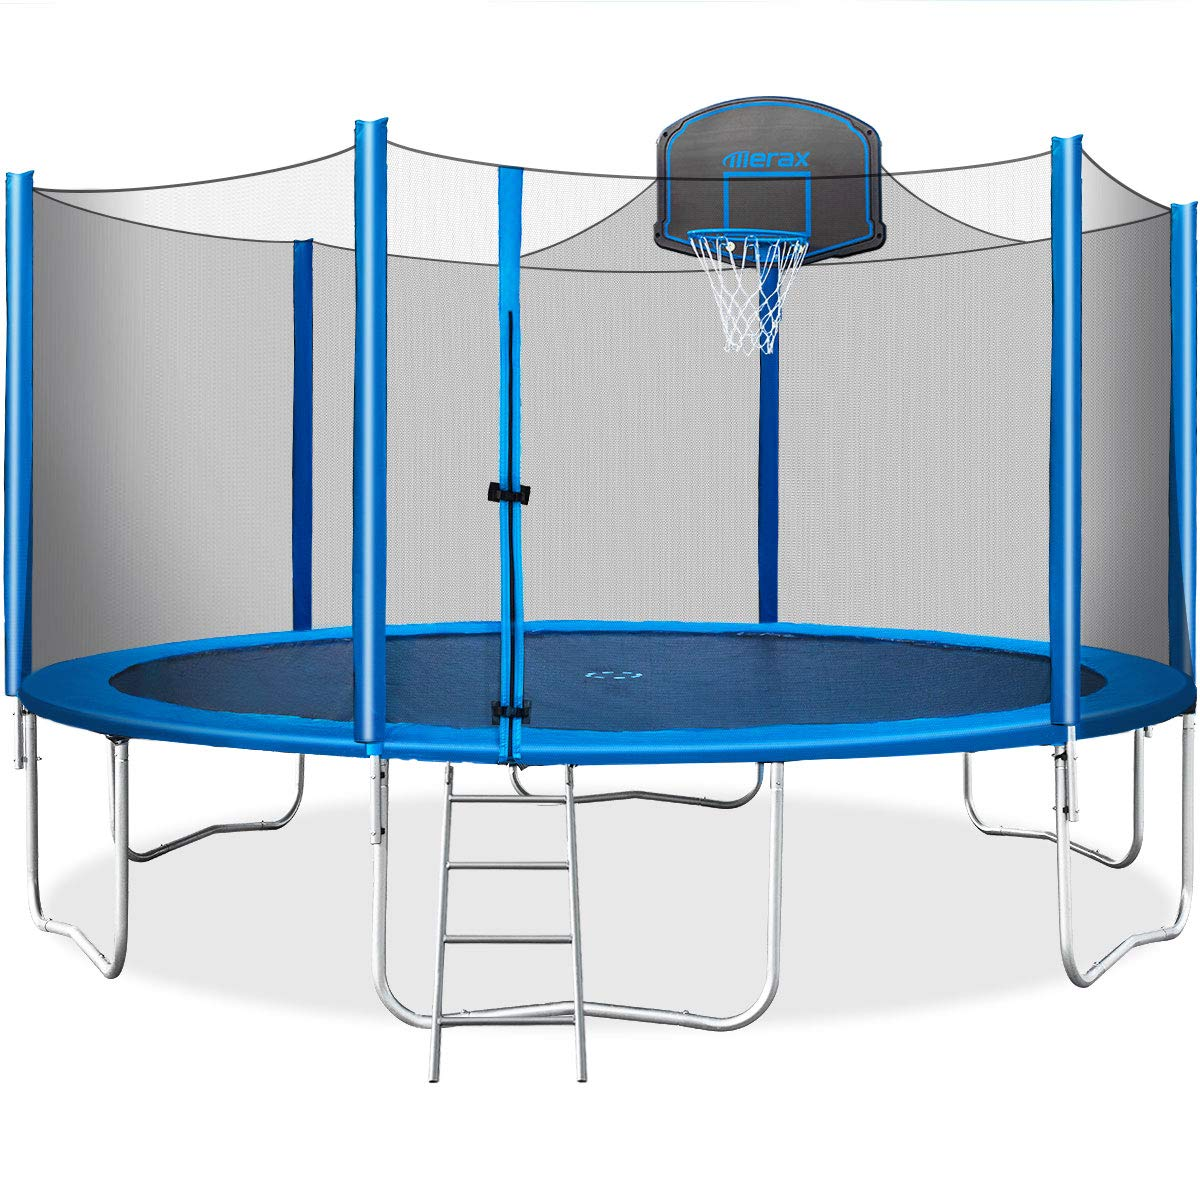 Merax 15 FT Trampoline with Safety Enclosure Net, Basketball Hoop and Ladder - 2019 Upgraded - Kids Basketball Trampoline (Blue) by Merax